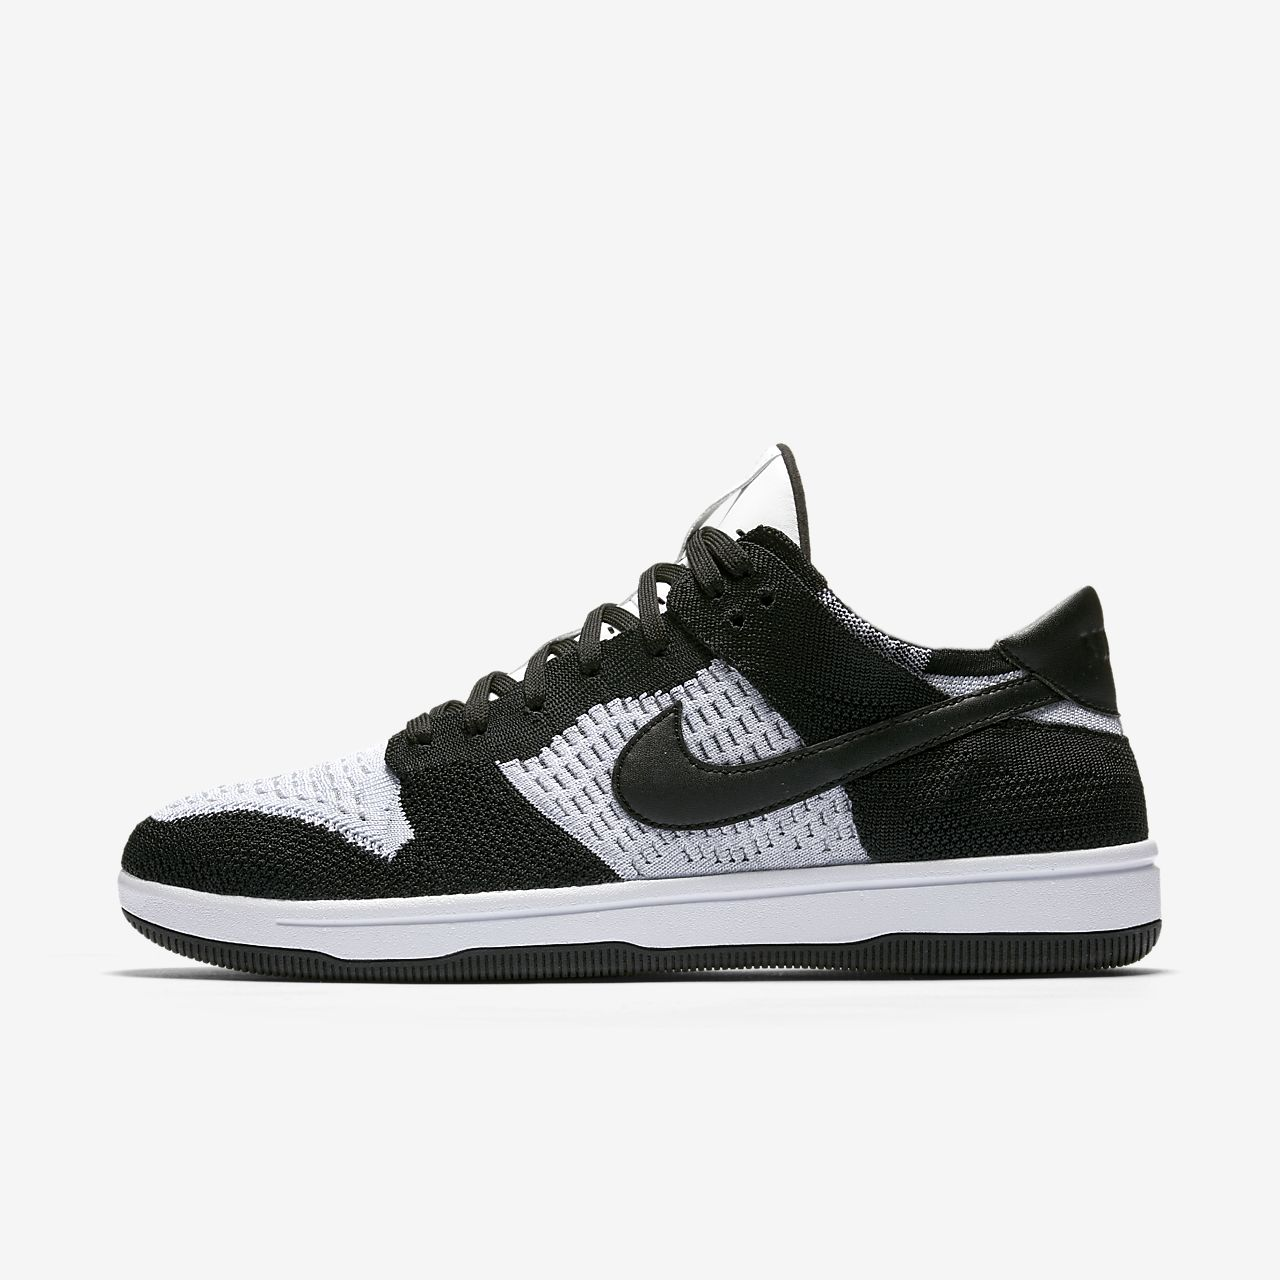 ... Chaussure Nike Dunk Low Flyknit pour Homme